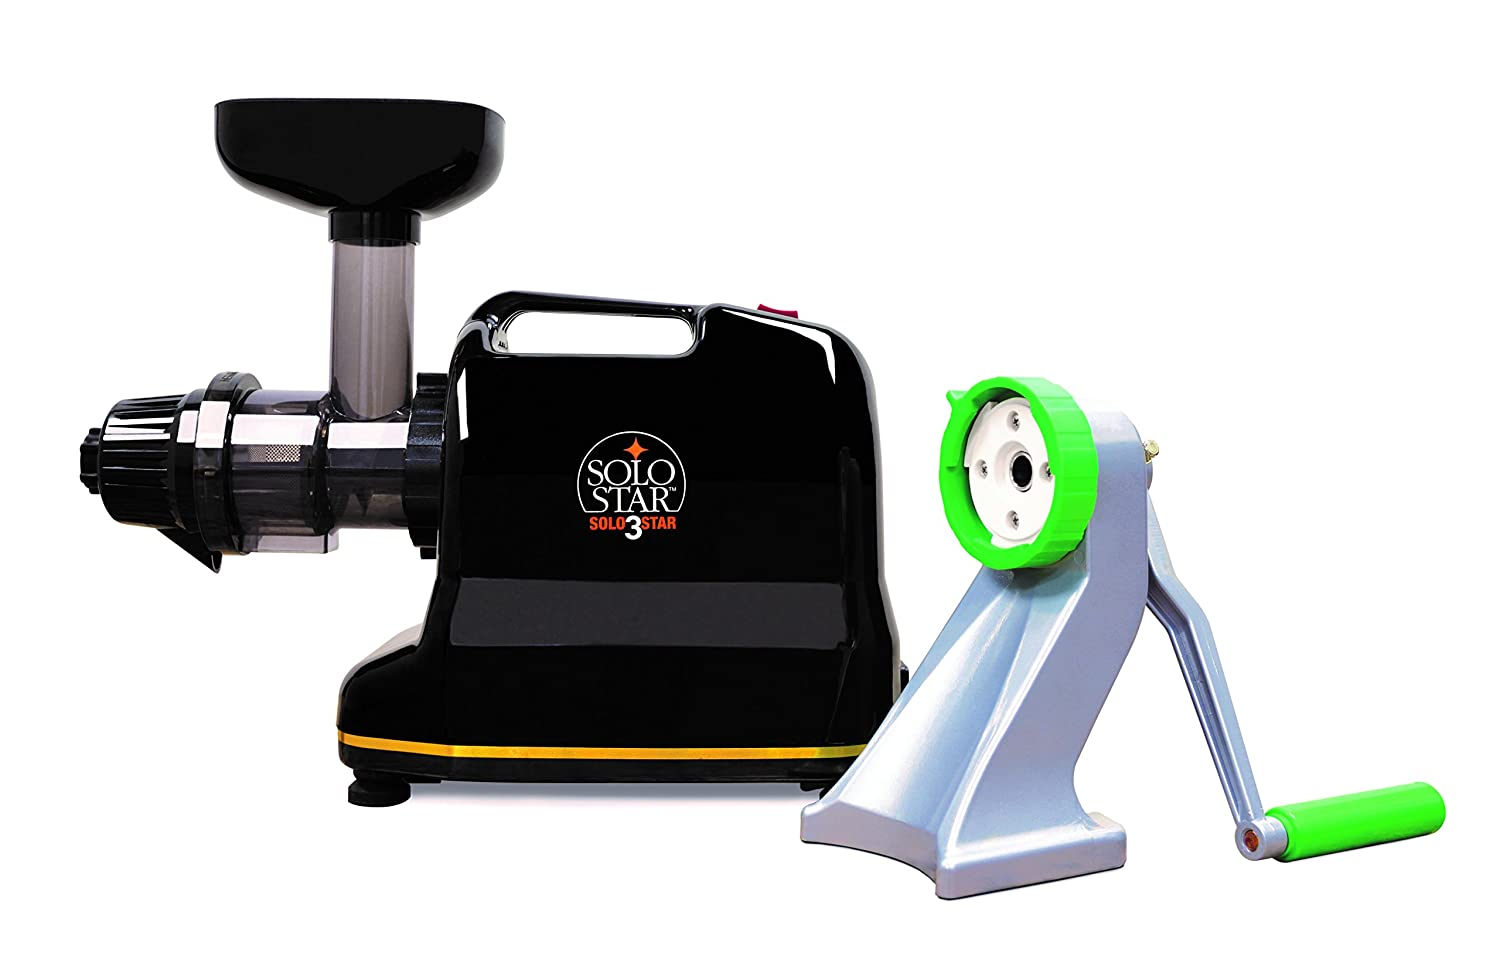 Tribest Solostar 3C SS-91113C-B Horizontal Single Auger Slow Masticating Juicer with Manual Conversion Kit, Black